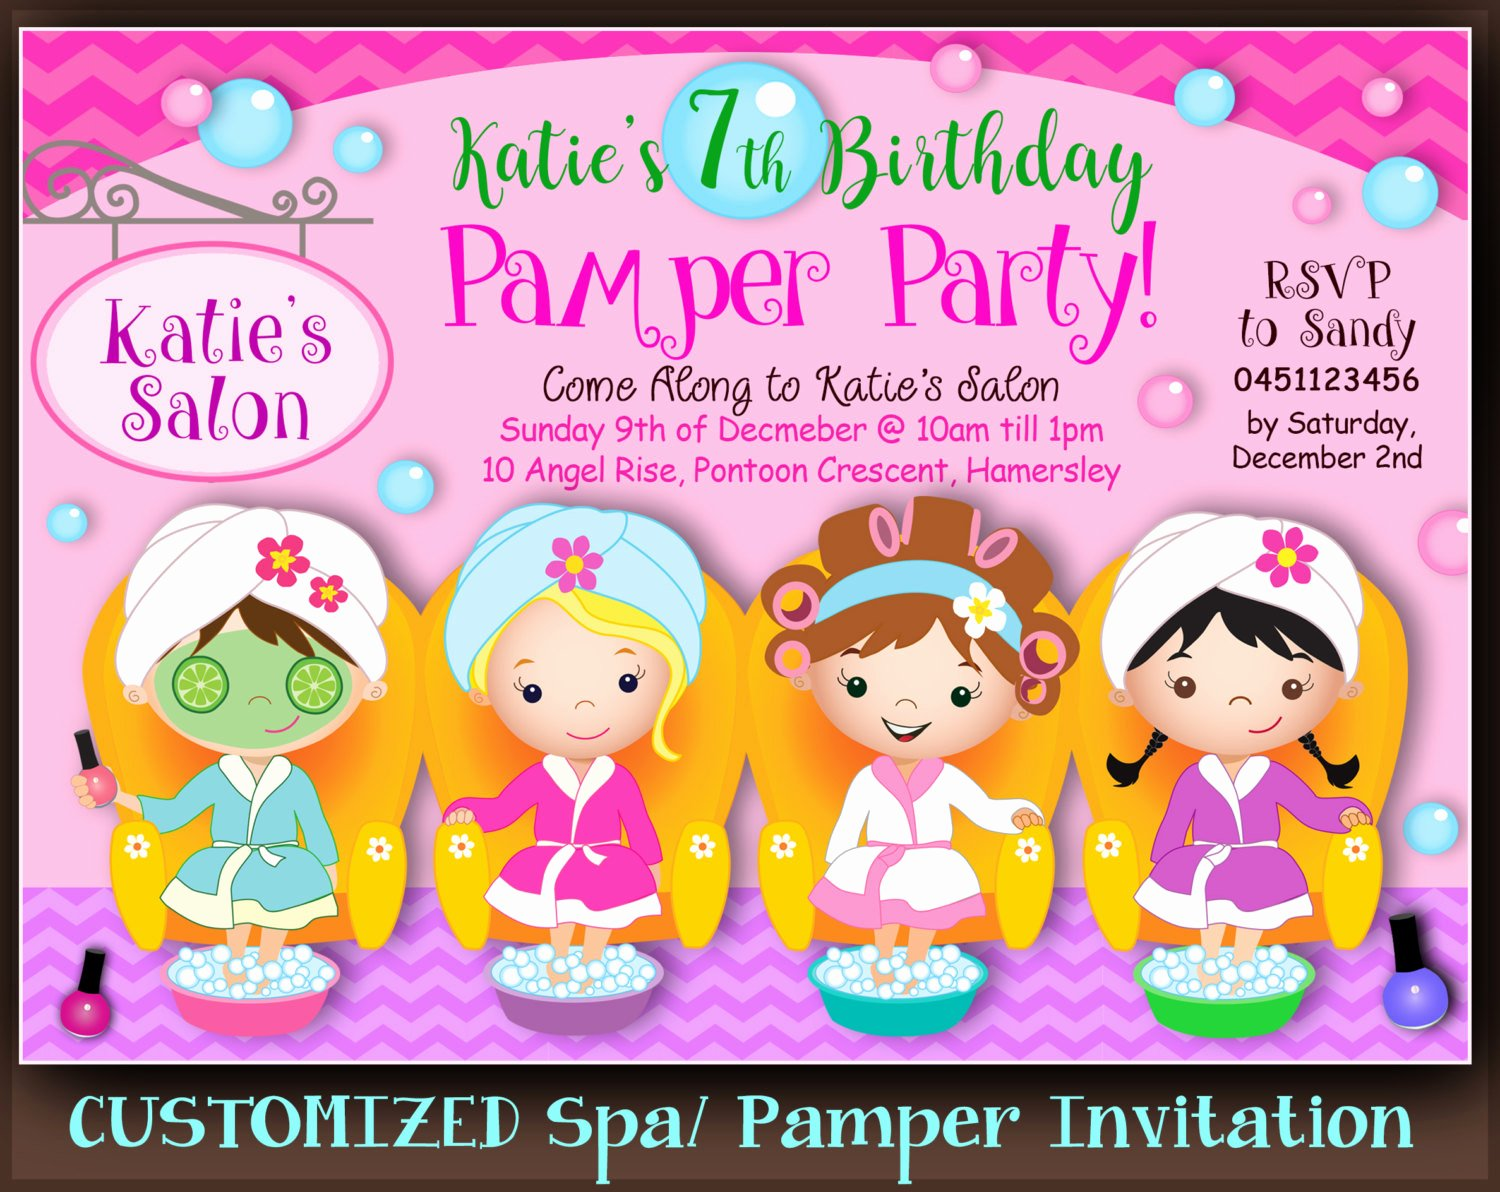 Spa Party Invitation Wording Inspirational Customized Spa Party Invitation Pamper Party Invite